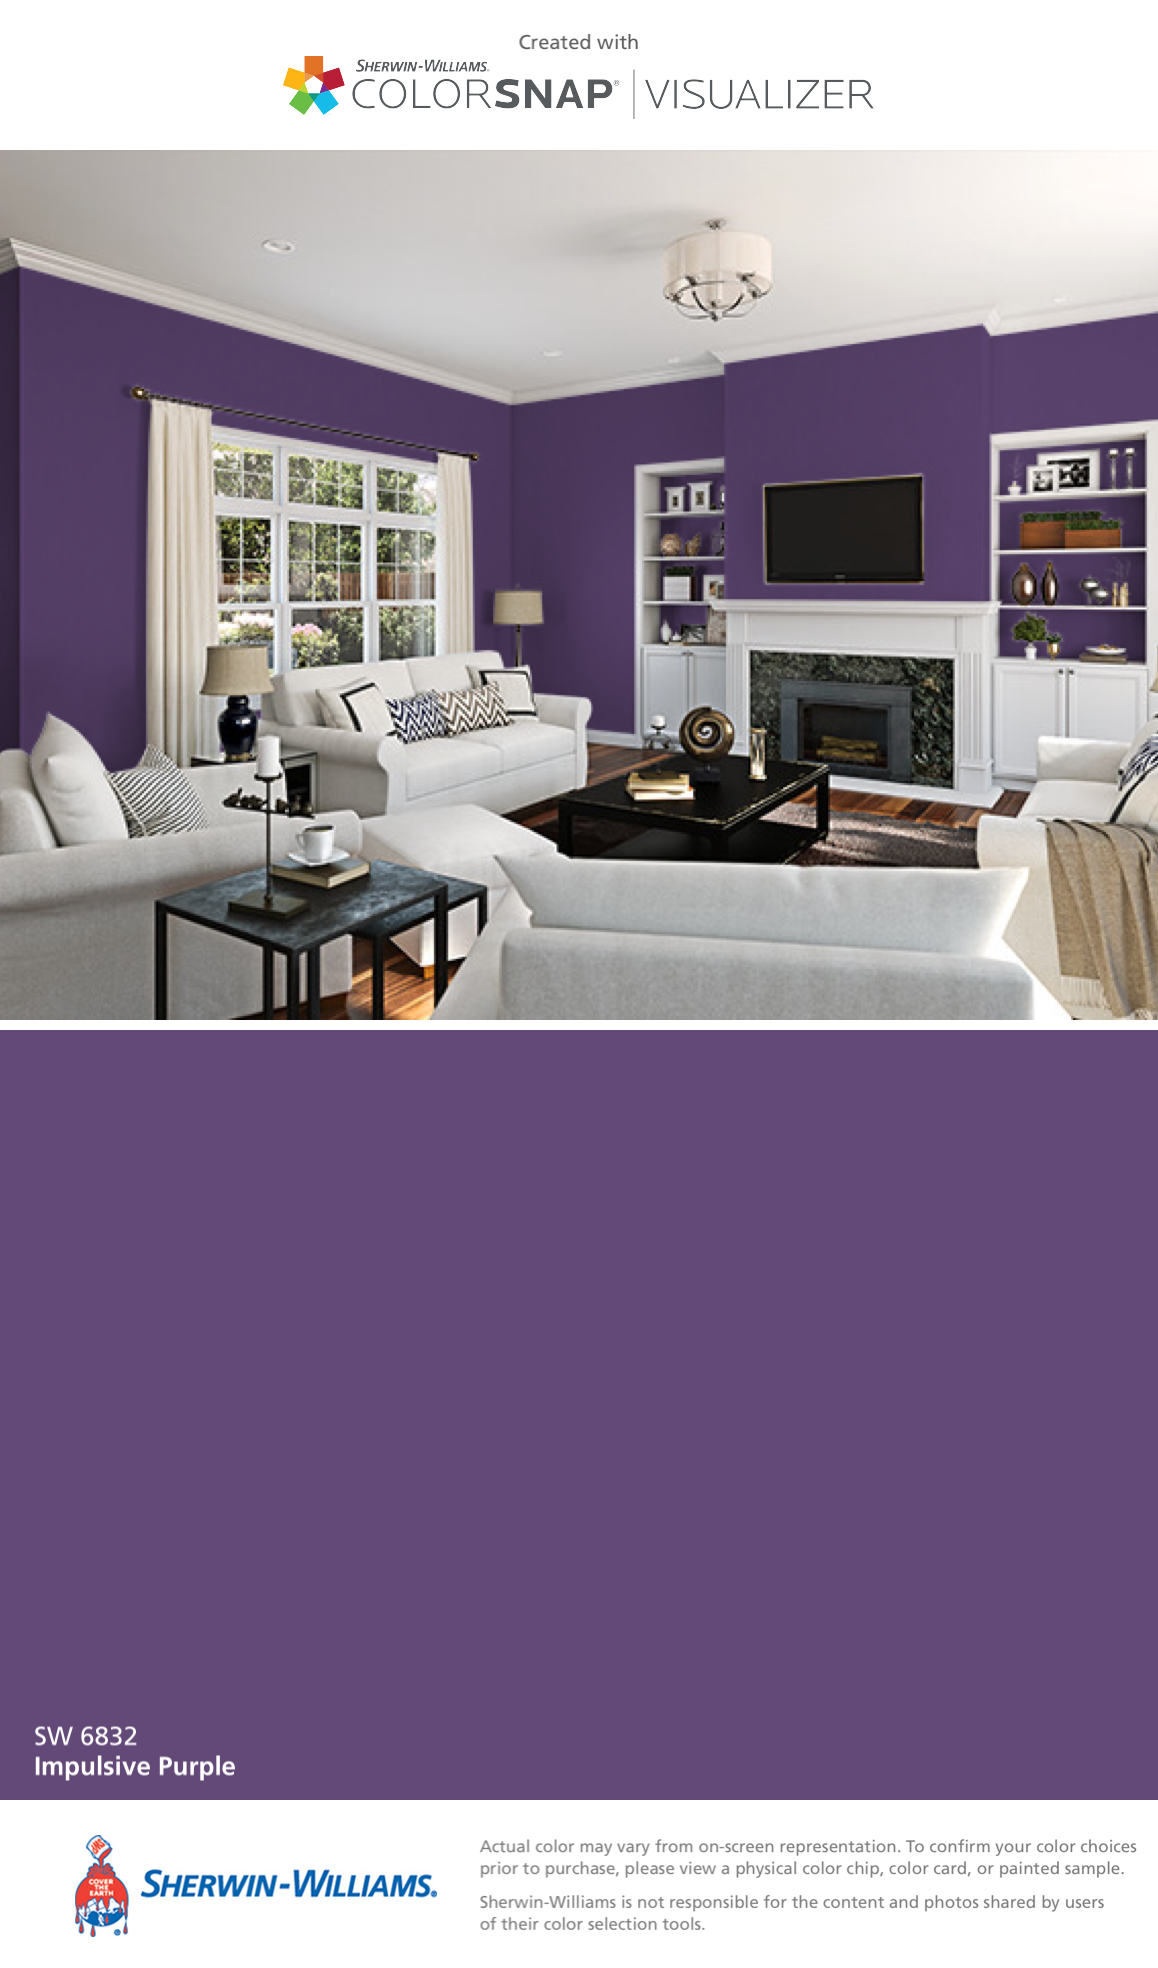 I found this color with colorsnap visualizer for iphone by sherwin williams impulsive purple sw